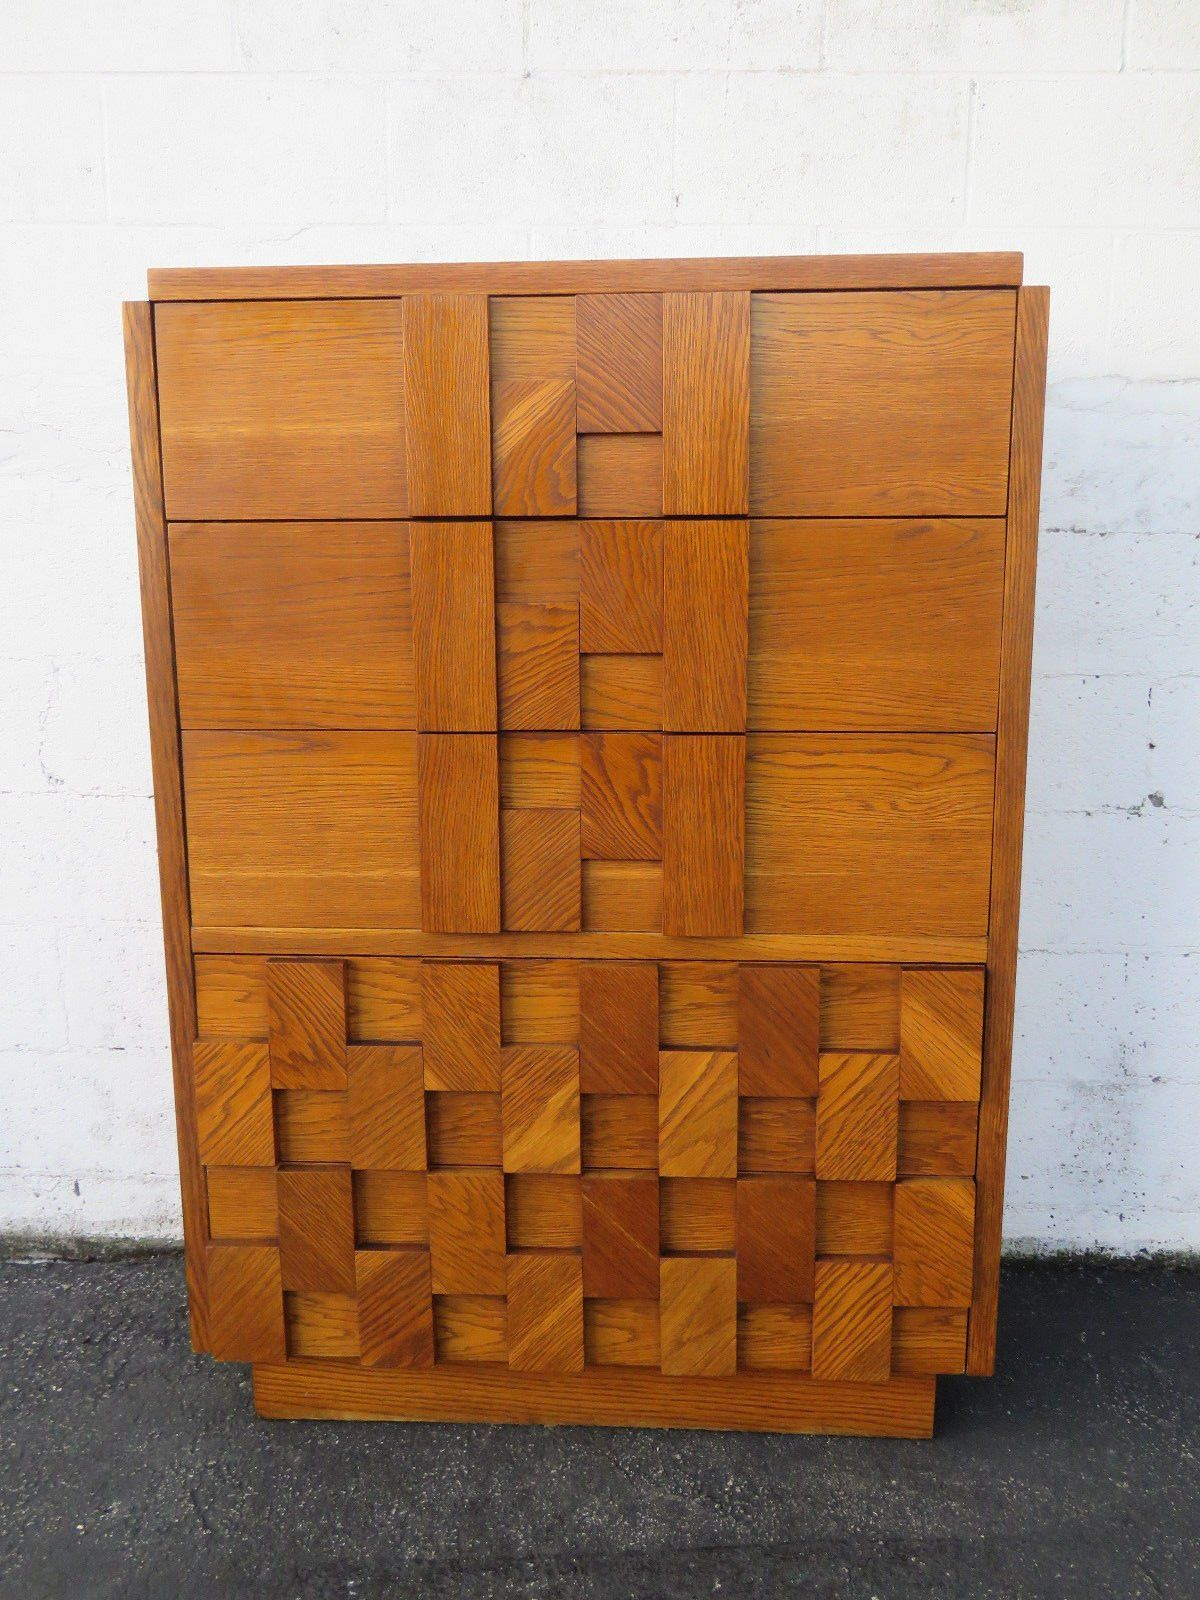 Brutalist cubist mid century modern tall chest of drawers